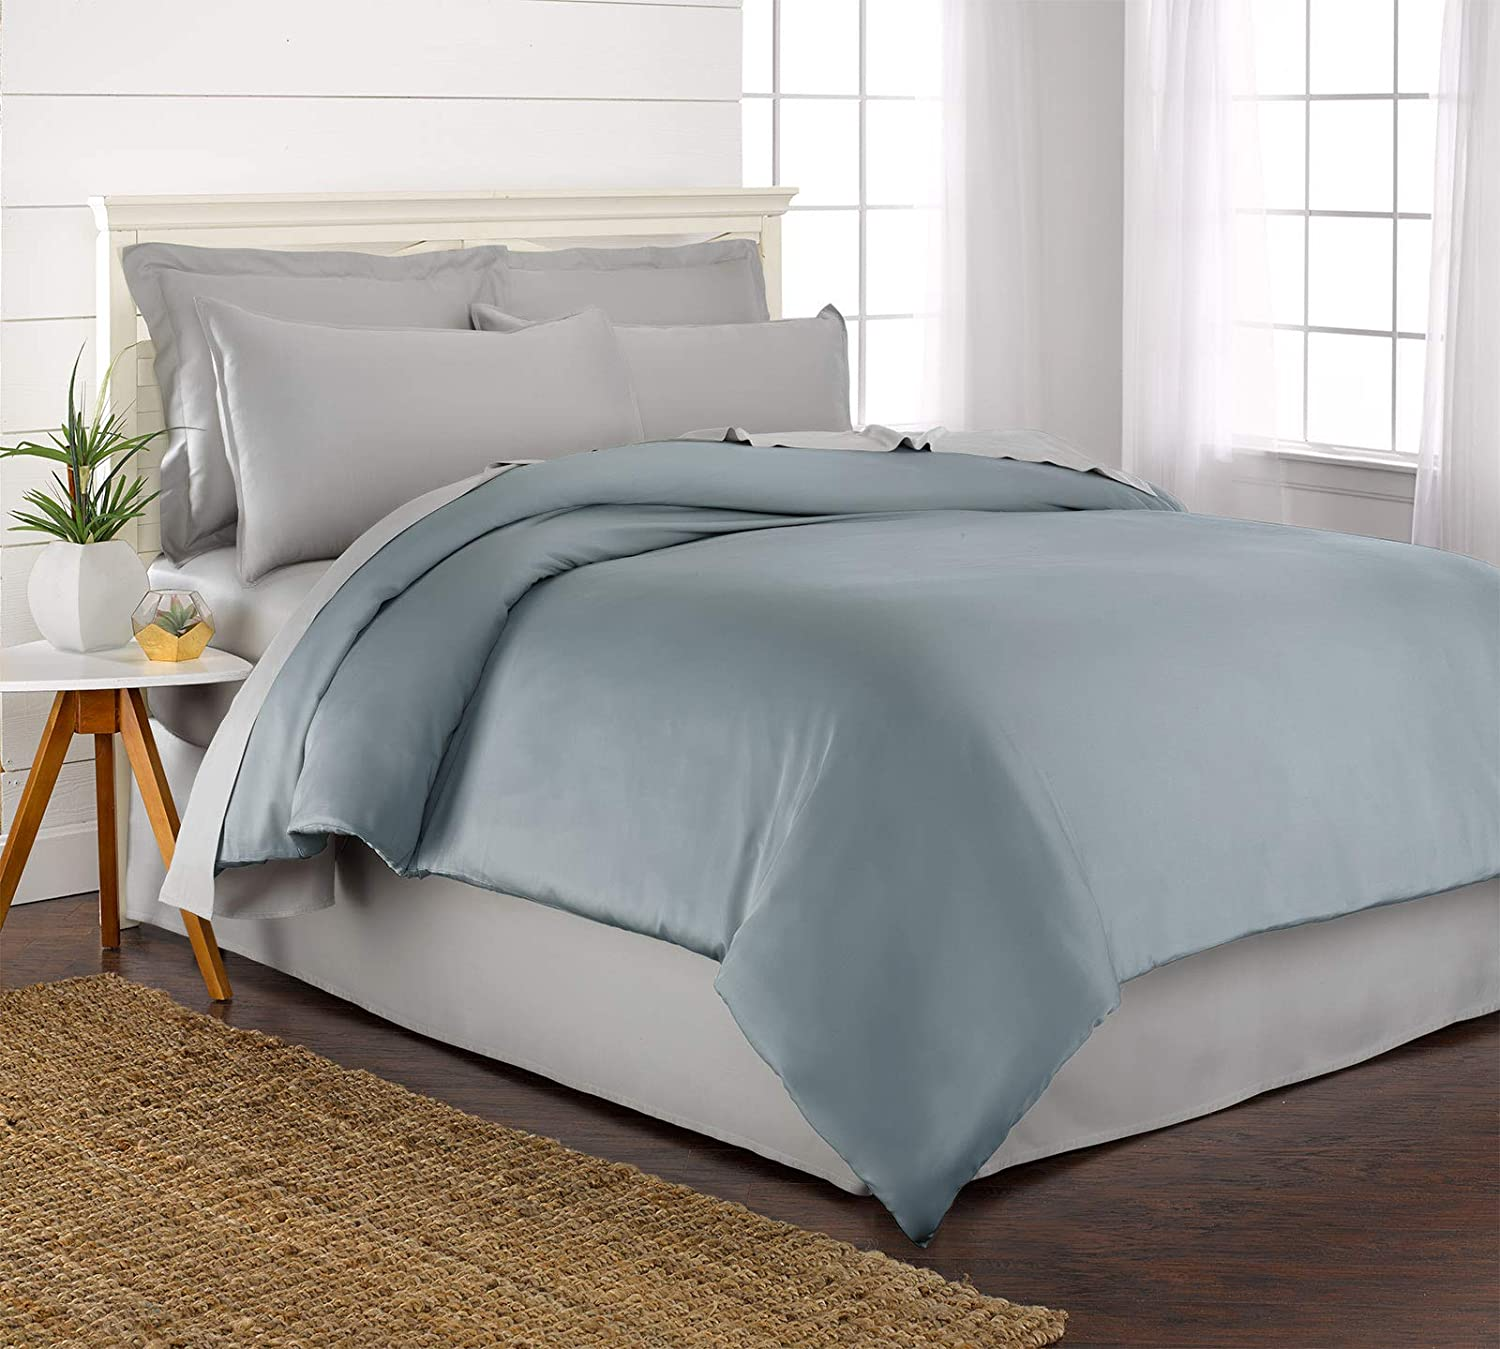 Pure Bamboo - King Duvet Cover Set - 100% Organic Bamboo - Luxuriously Soft (King, Sterling bluee)